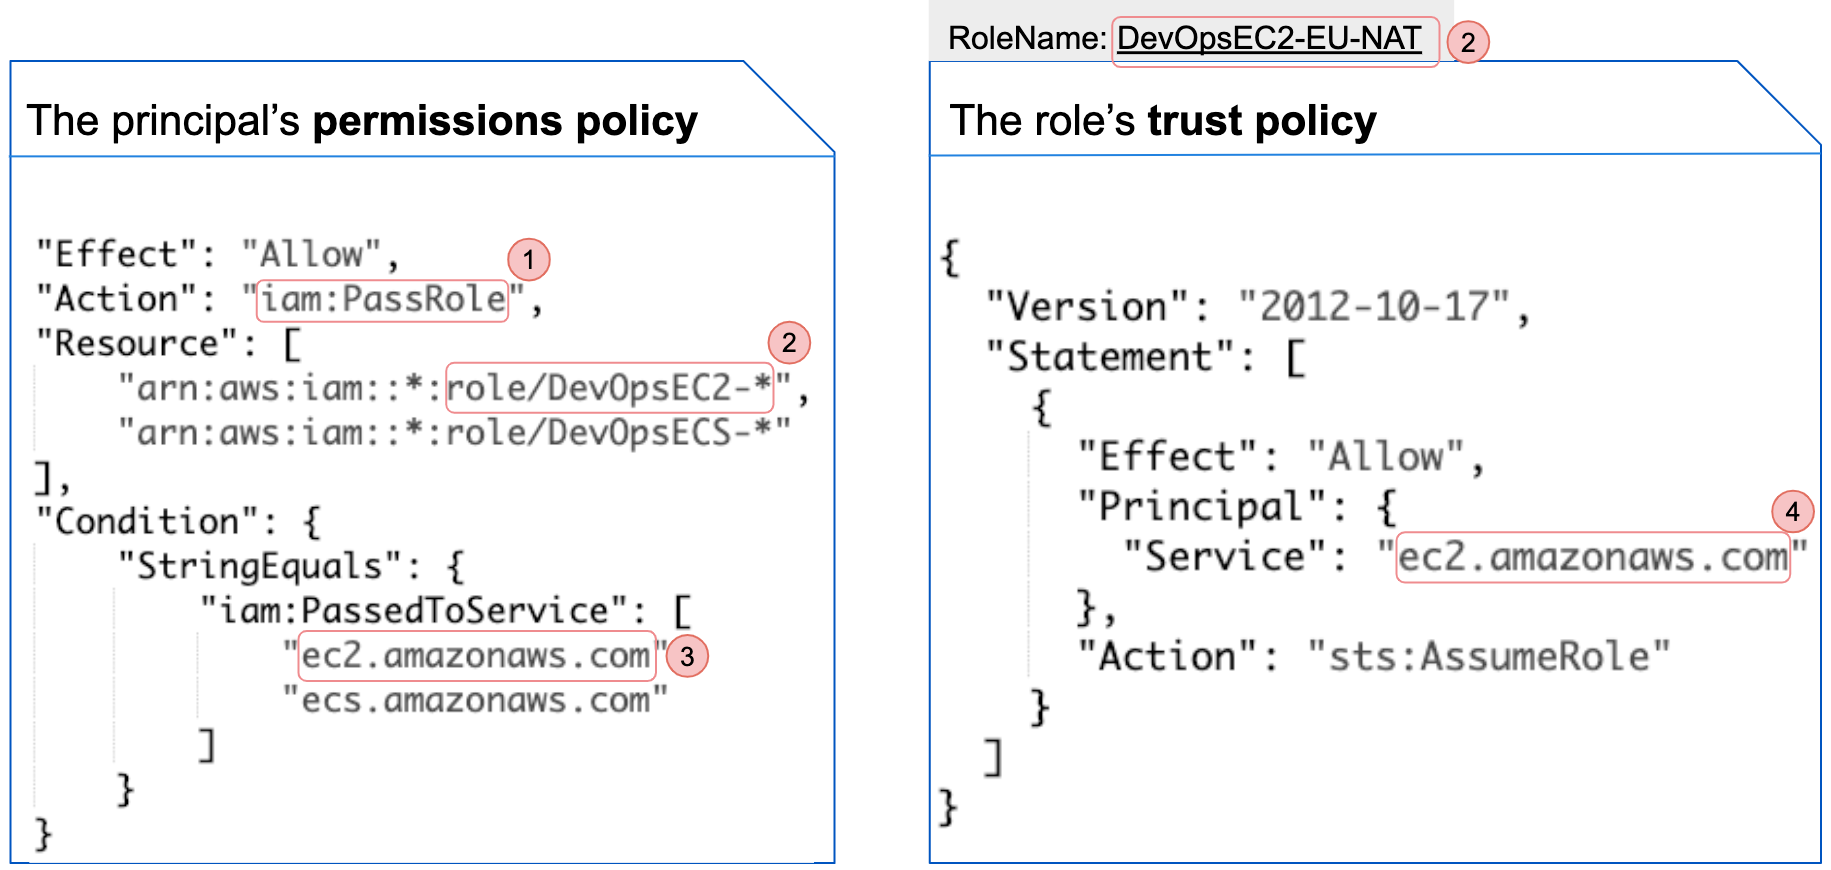 The code shown in the image displays an example of a principal's permissions policy and the trust policy of an IAM Role (in this case, DevOpsEC2-EU-NAT)